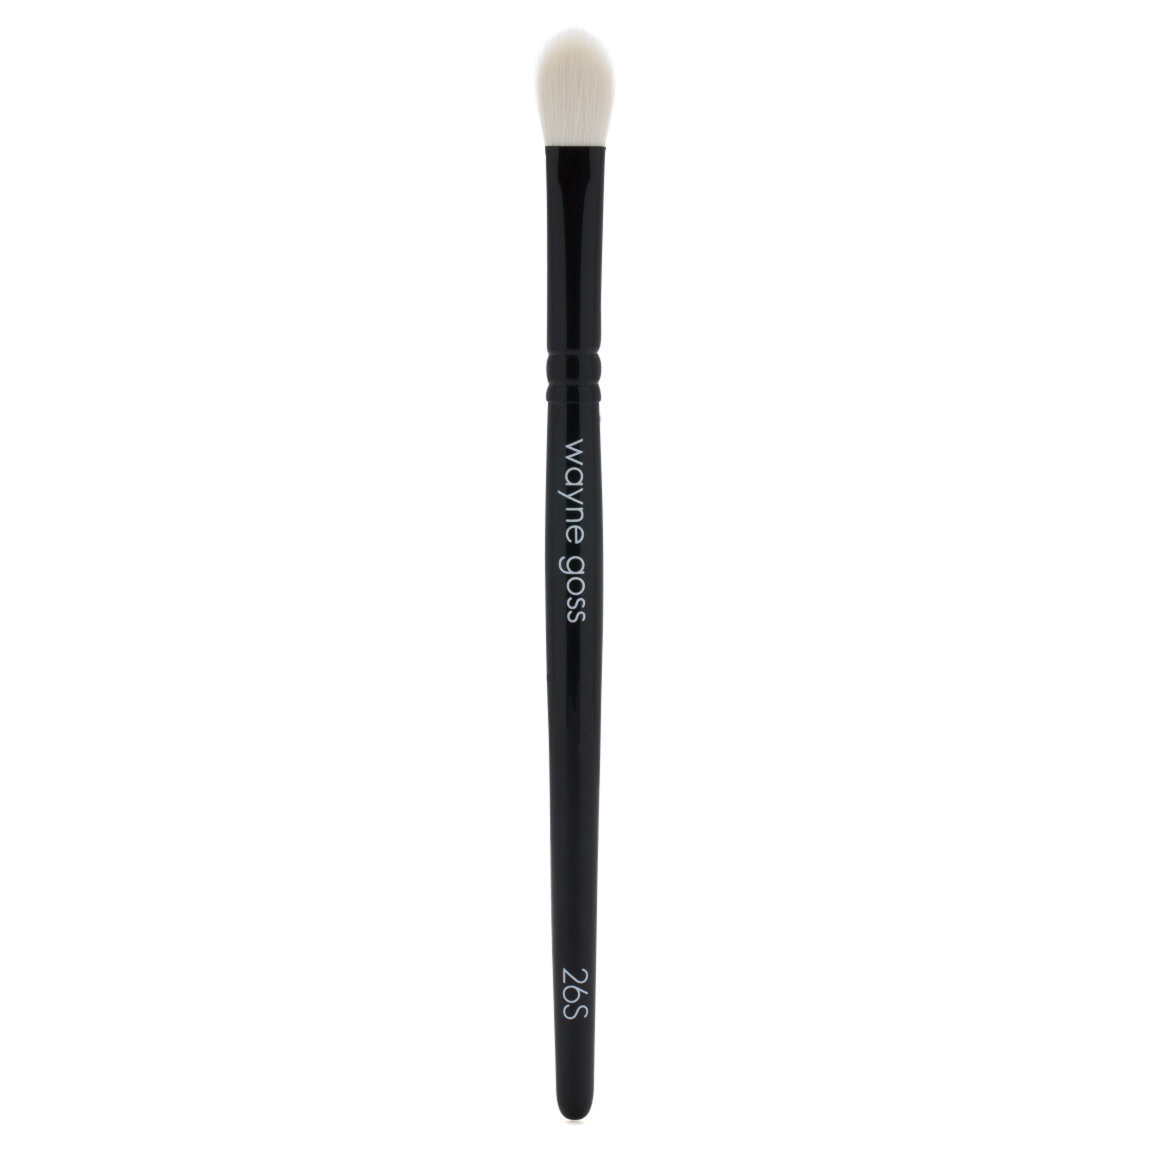 Wayne Goss Brush 26S Blending Brush product smear.